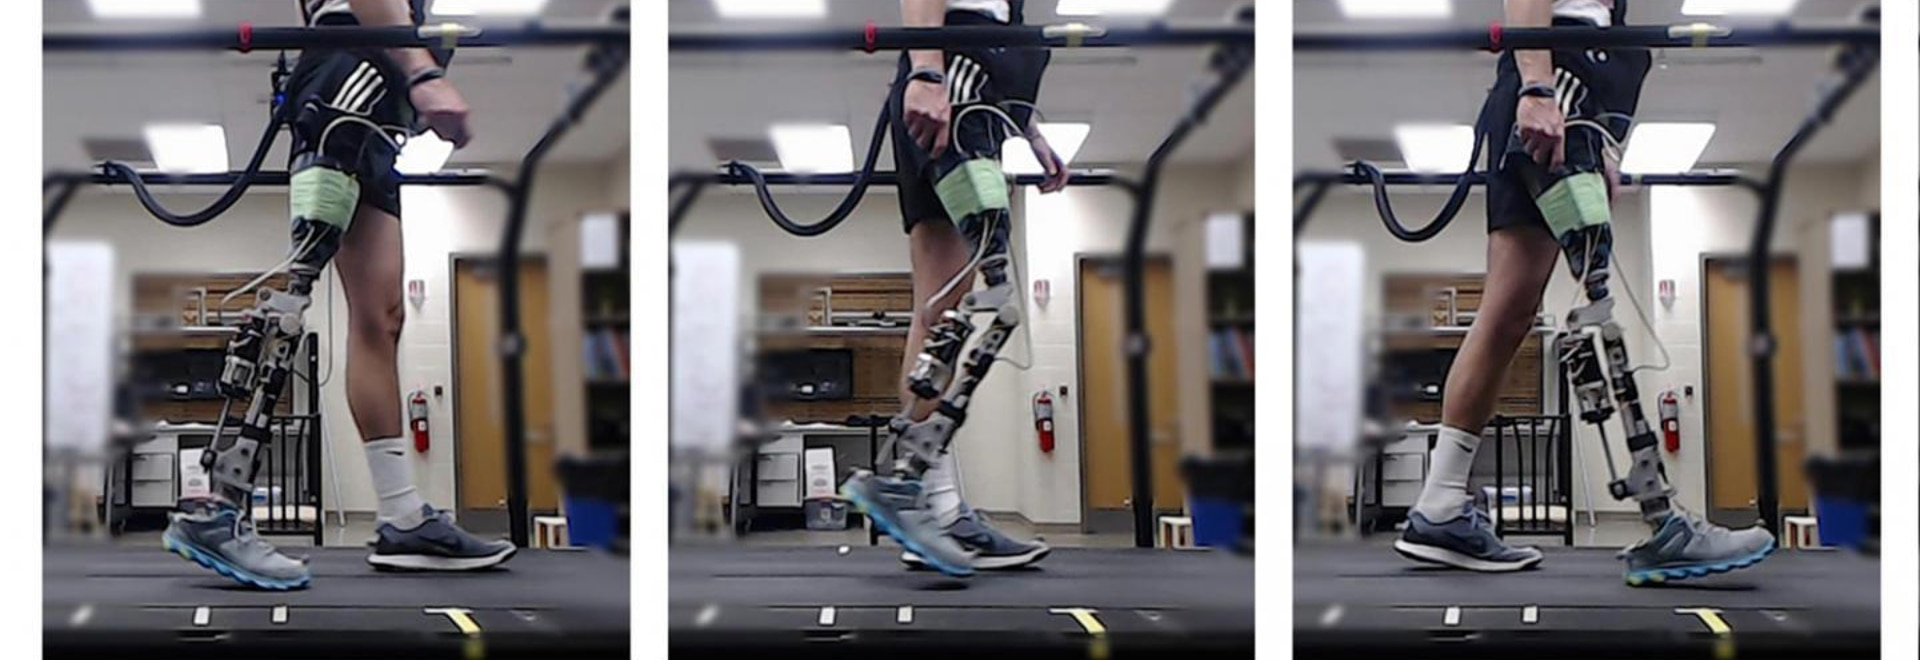 Reinforcement Learning System Automatically Trains Prosthetic Legs